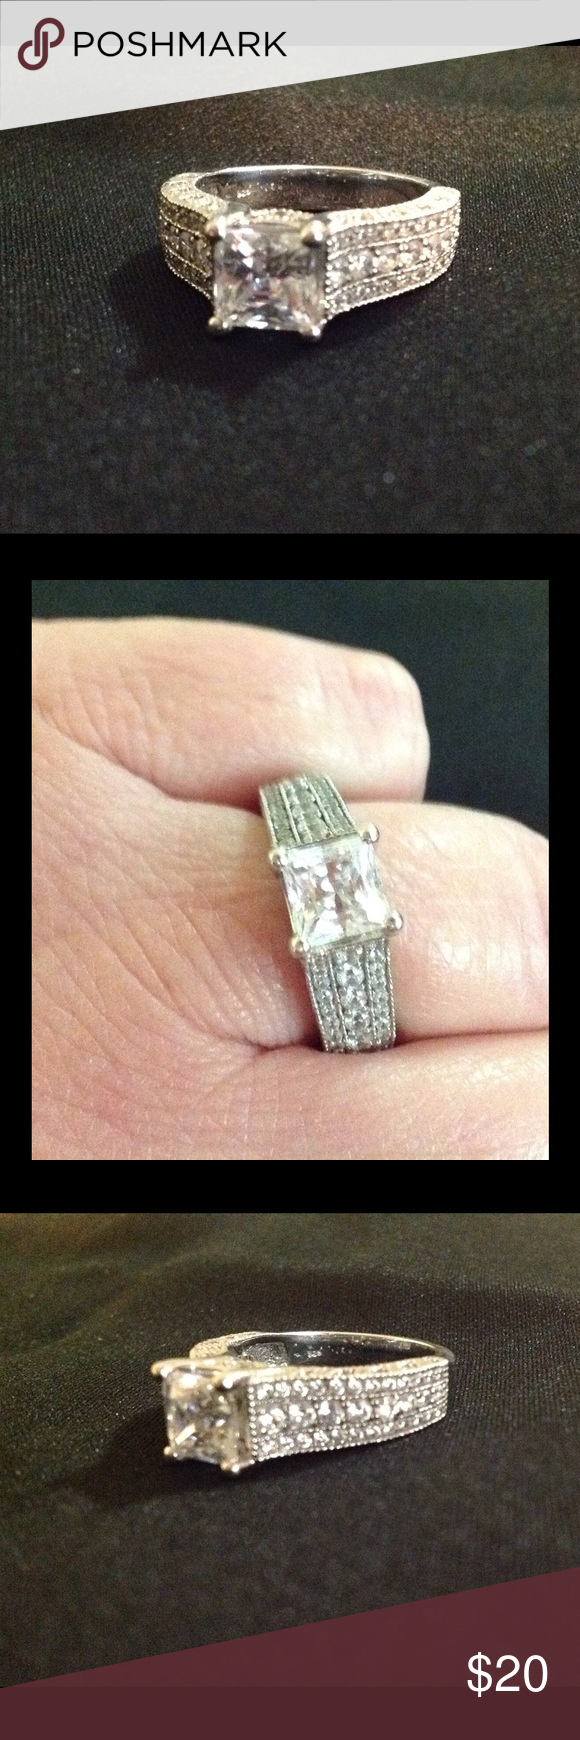 925 ring size 8 Sterling silver ring size 8. Stamped 925. Good condition. No box. Jewelry Rings